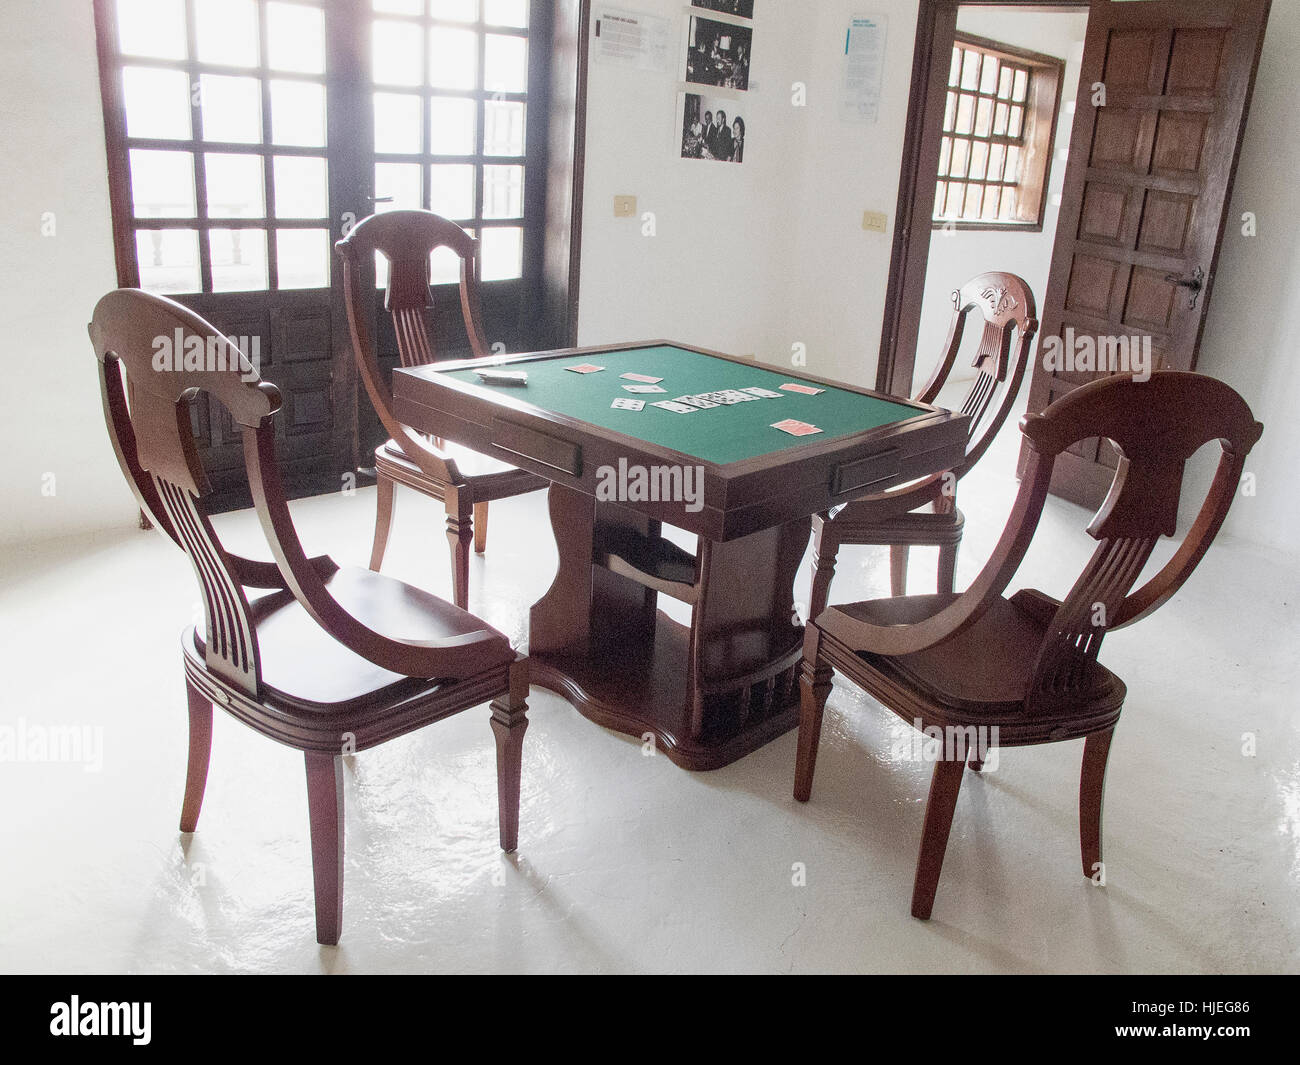 Card table and chairs once used by actor Omar Sharif in his home on Lanzarote. - Stock Image